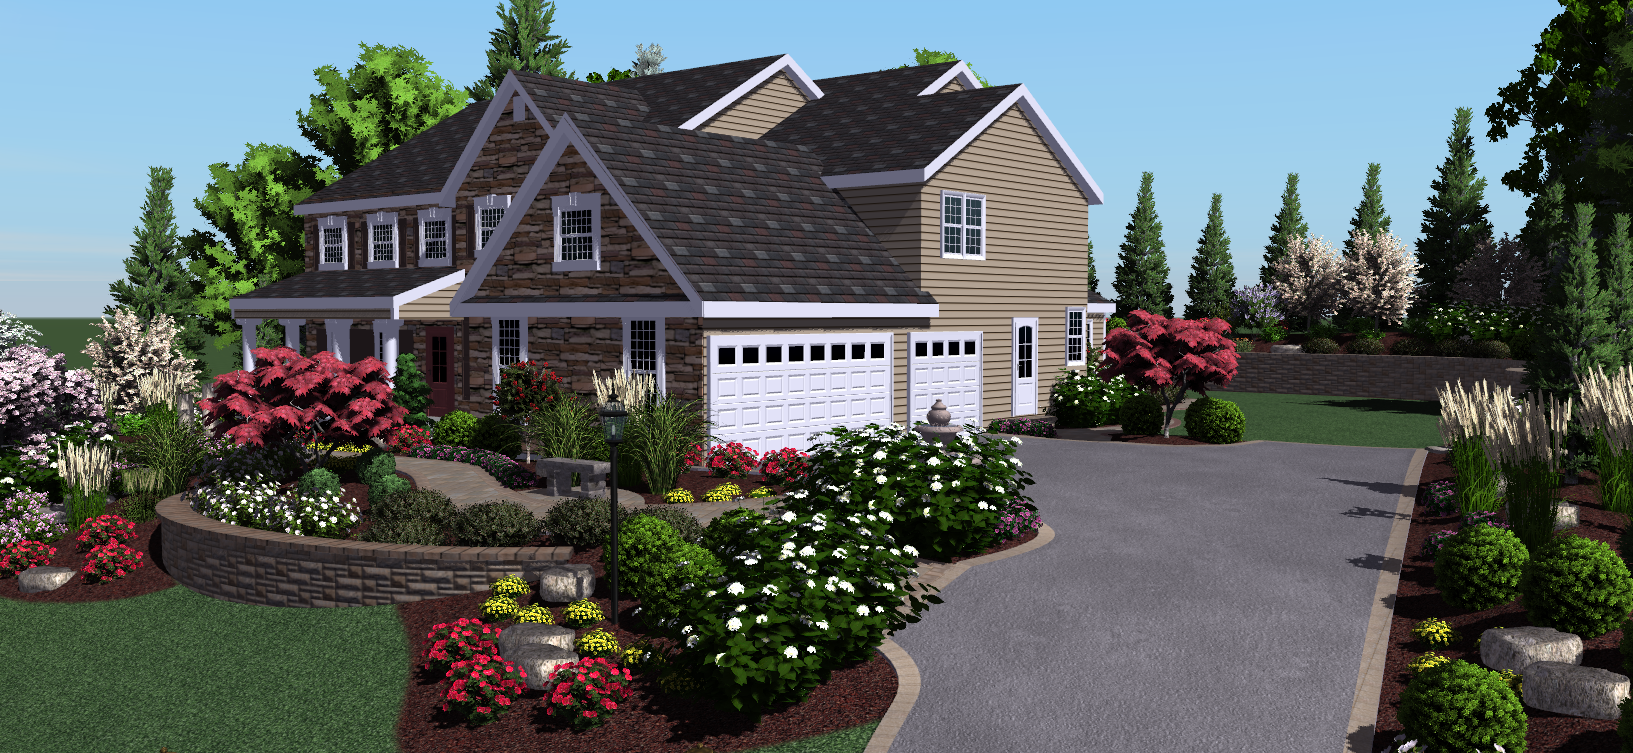 Professional Landscaping Visionscape Takes Professional 3d Landscape Design Software Social Landscape Design Software Free Landscape Design Home Landscaping